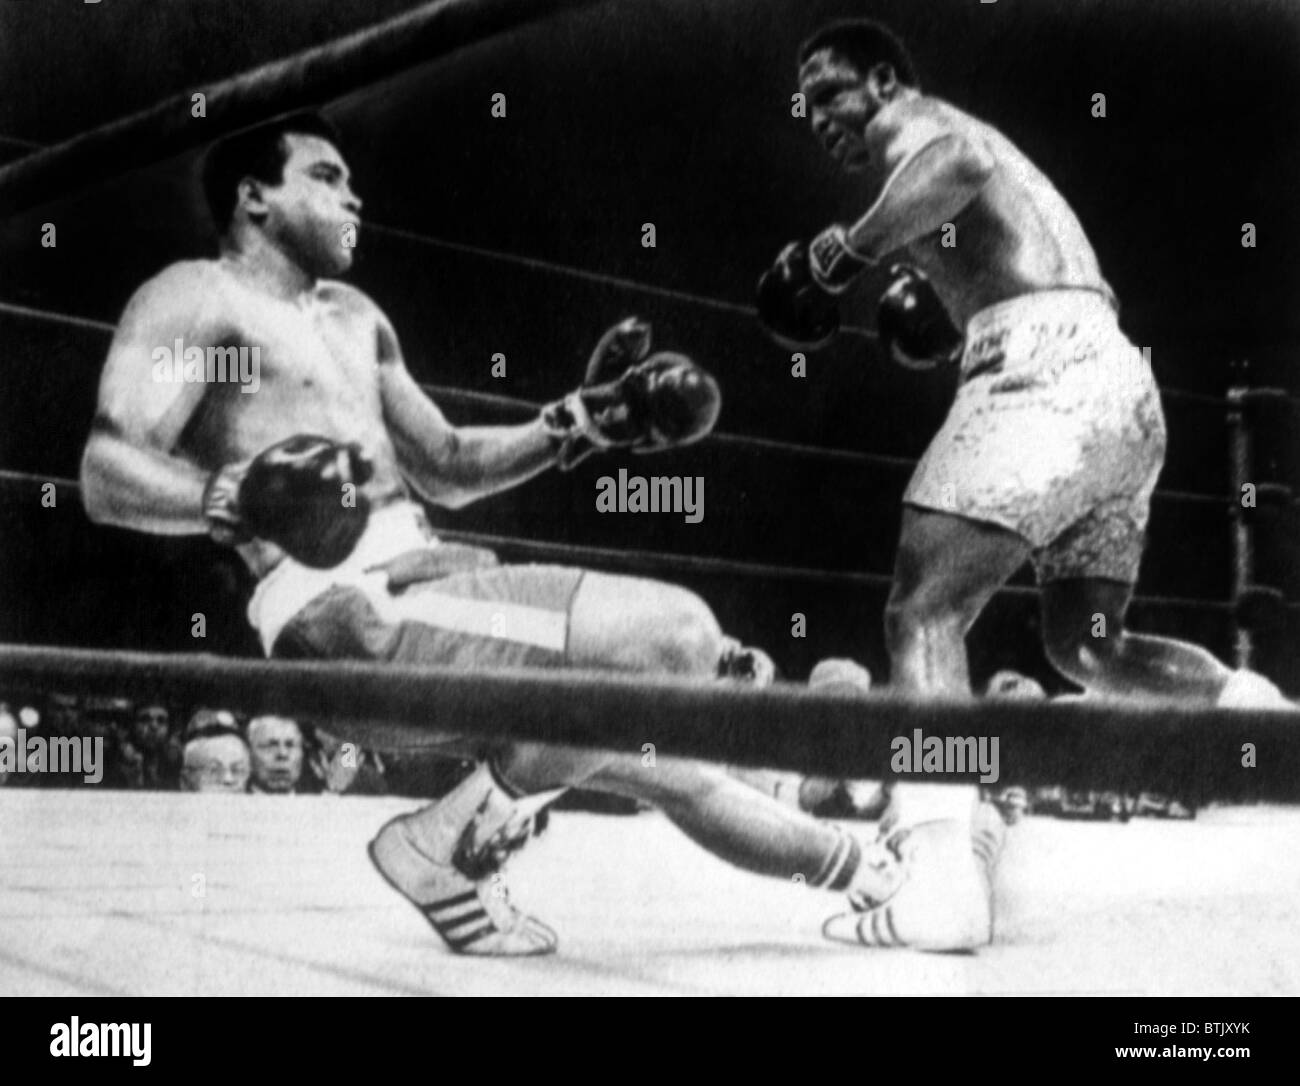 Muhammad Ali knocked down by Joe Frazier in their first title match in Madison Square Garden, 1971 - Stock Image